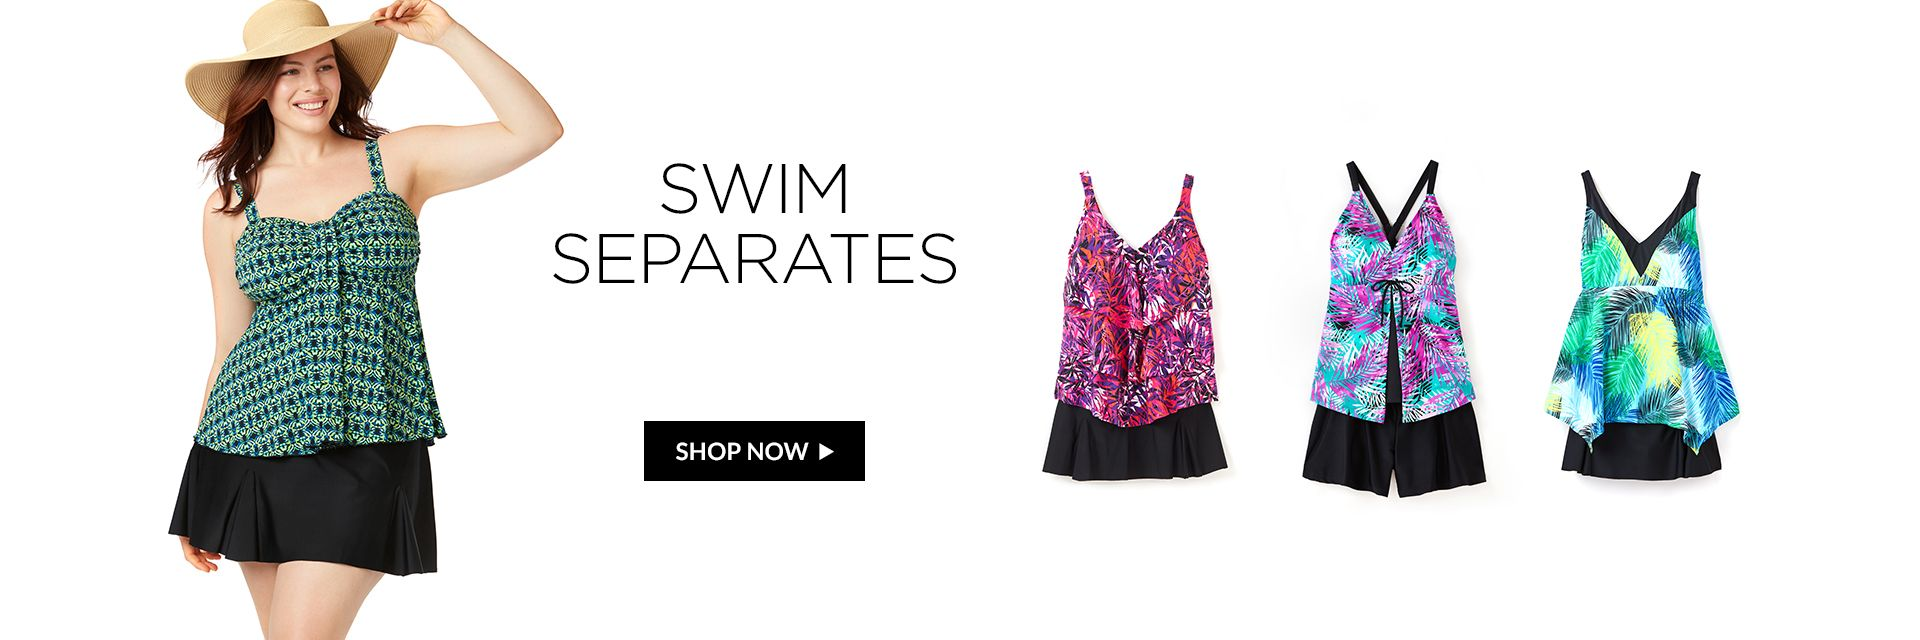 Shop Swim Separates at Catherines Plus Sizes